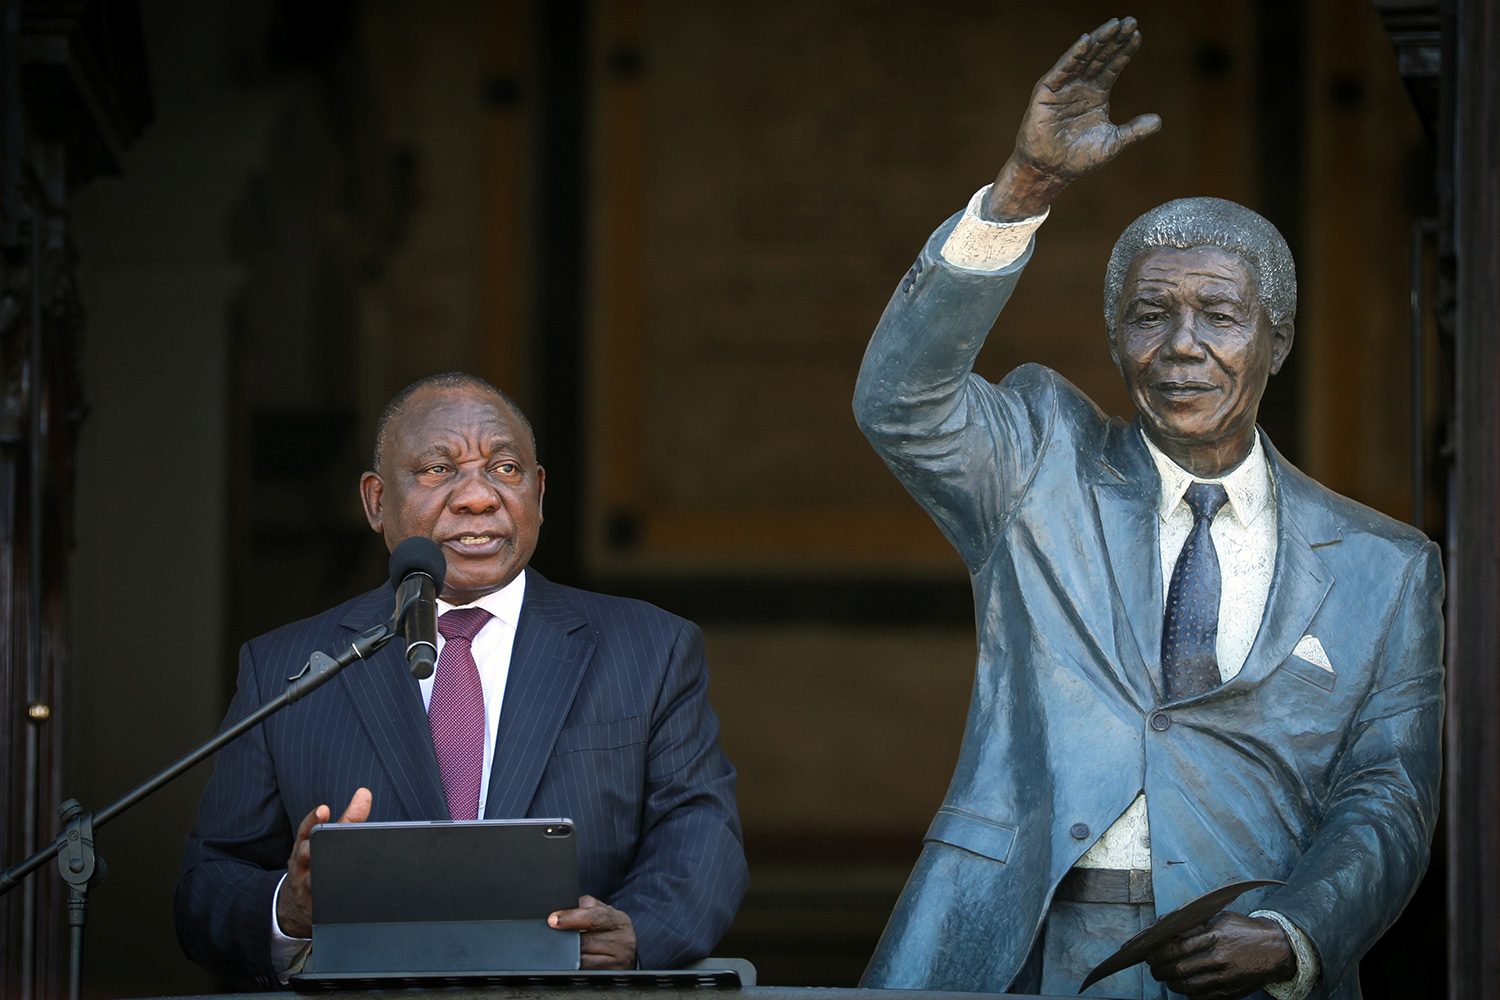 South Africa's President Cyril Ramaphosa speaks in Cape Town, South Africa on Feb 11, 2020 from the balcony where, 30 years before, Nelson Mandela gave his first speech after his release from prison. The images shows the president standing next to a life-sized statue of Nelson Mandela. REUTERS/Sumaya Hisham